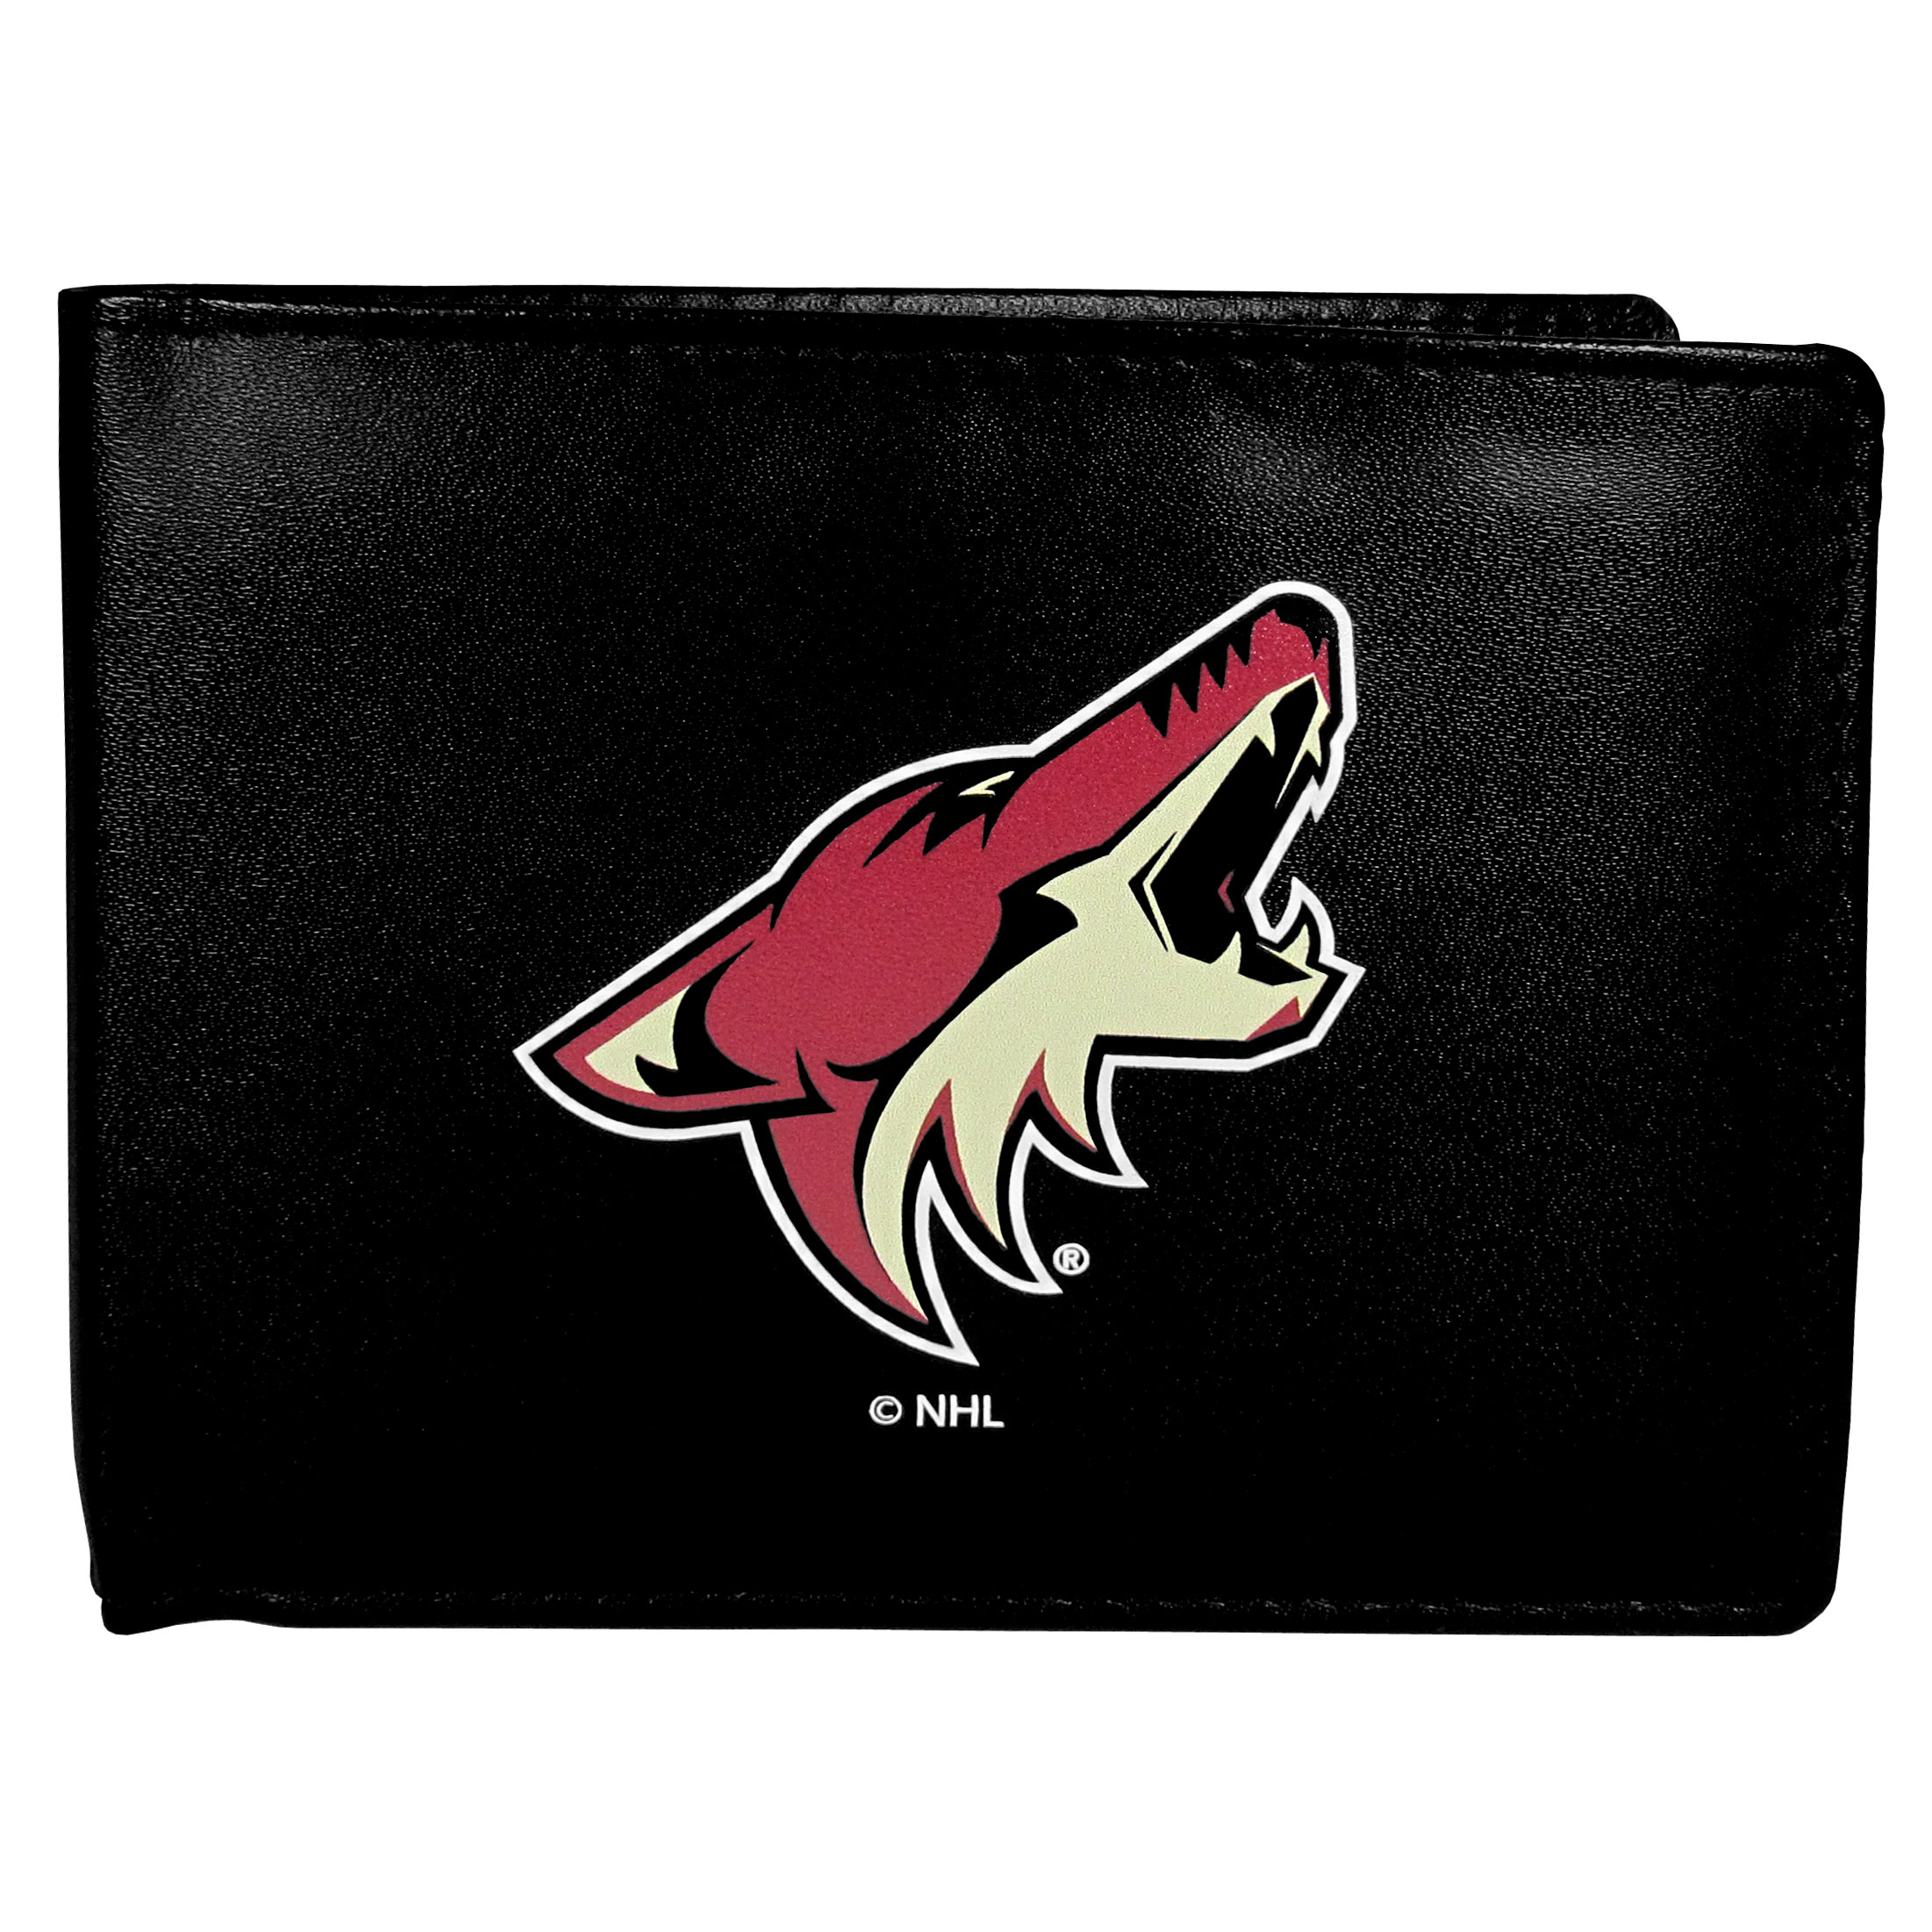 Arizona Coyotes® Leather Bi-fold Wallet, Large Logo - Our classic fine leather bi-fold wallet is meticulously crafted with genuine leather that will age beautifully so you will have a quality wallet for years to come. The wallet opens to a large, billfold pocket and numerous credit card slots and has a convenient windowed ID slot. The front of the wallet features an extra large Arizona Coyotes® printed logo.